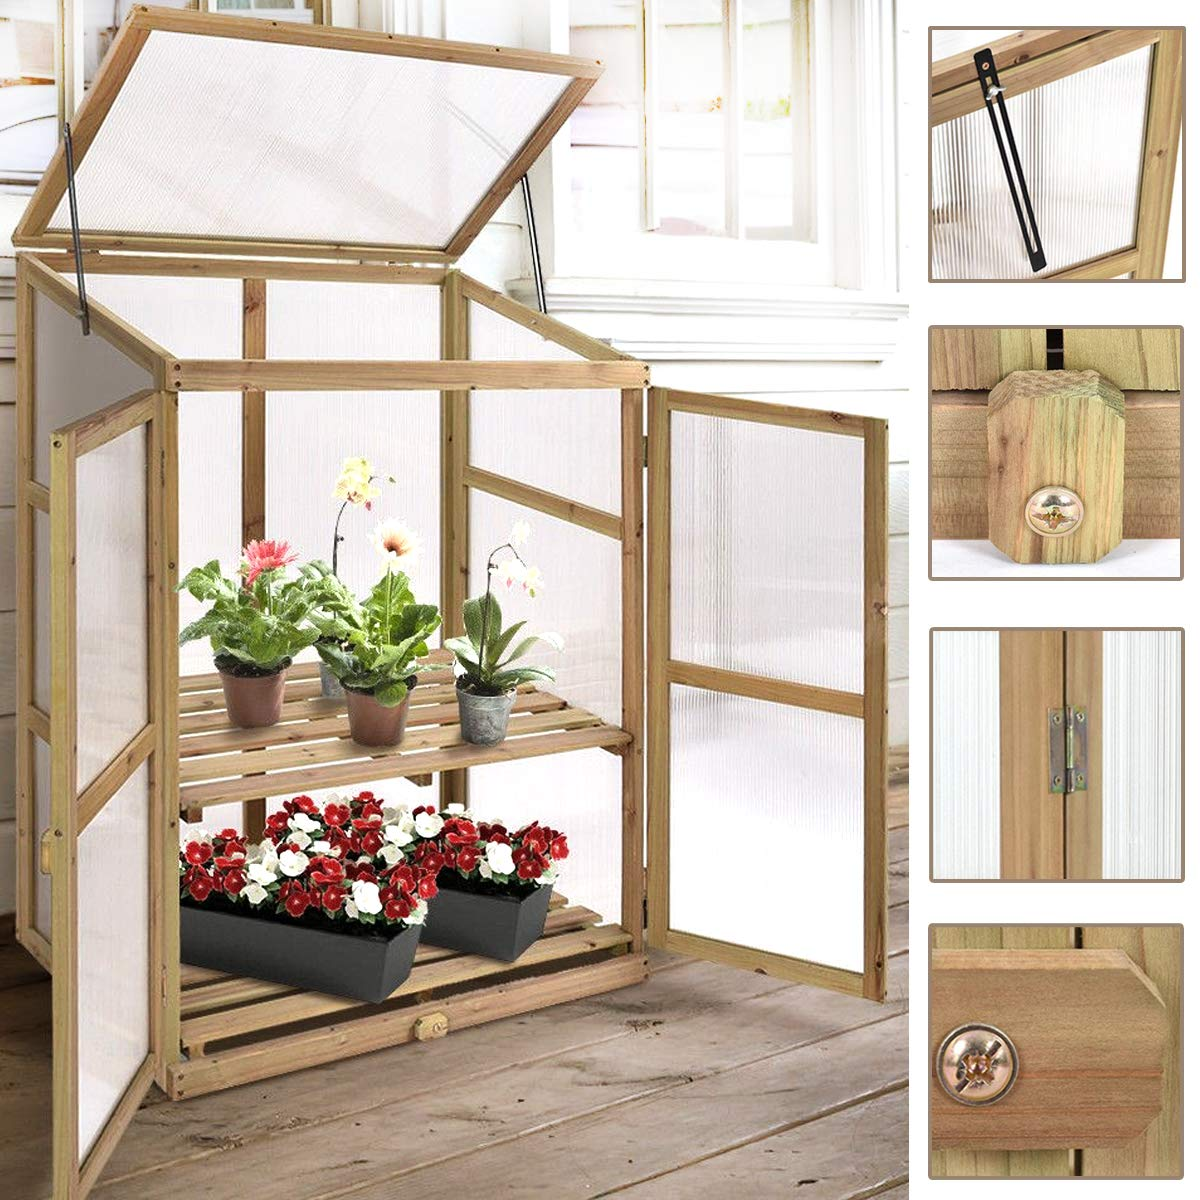 Garden Portable Wooden Greenhouse Cold Frame for Raised Flower Planter Protection 30.0'' Long x 22.5'' Wide x 43'' High